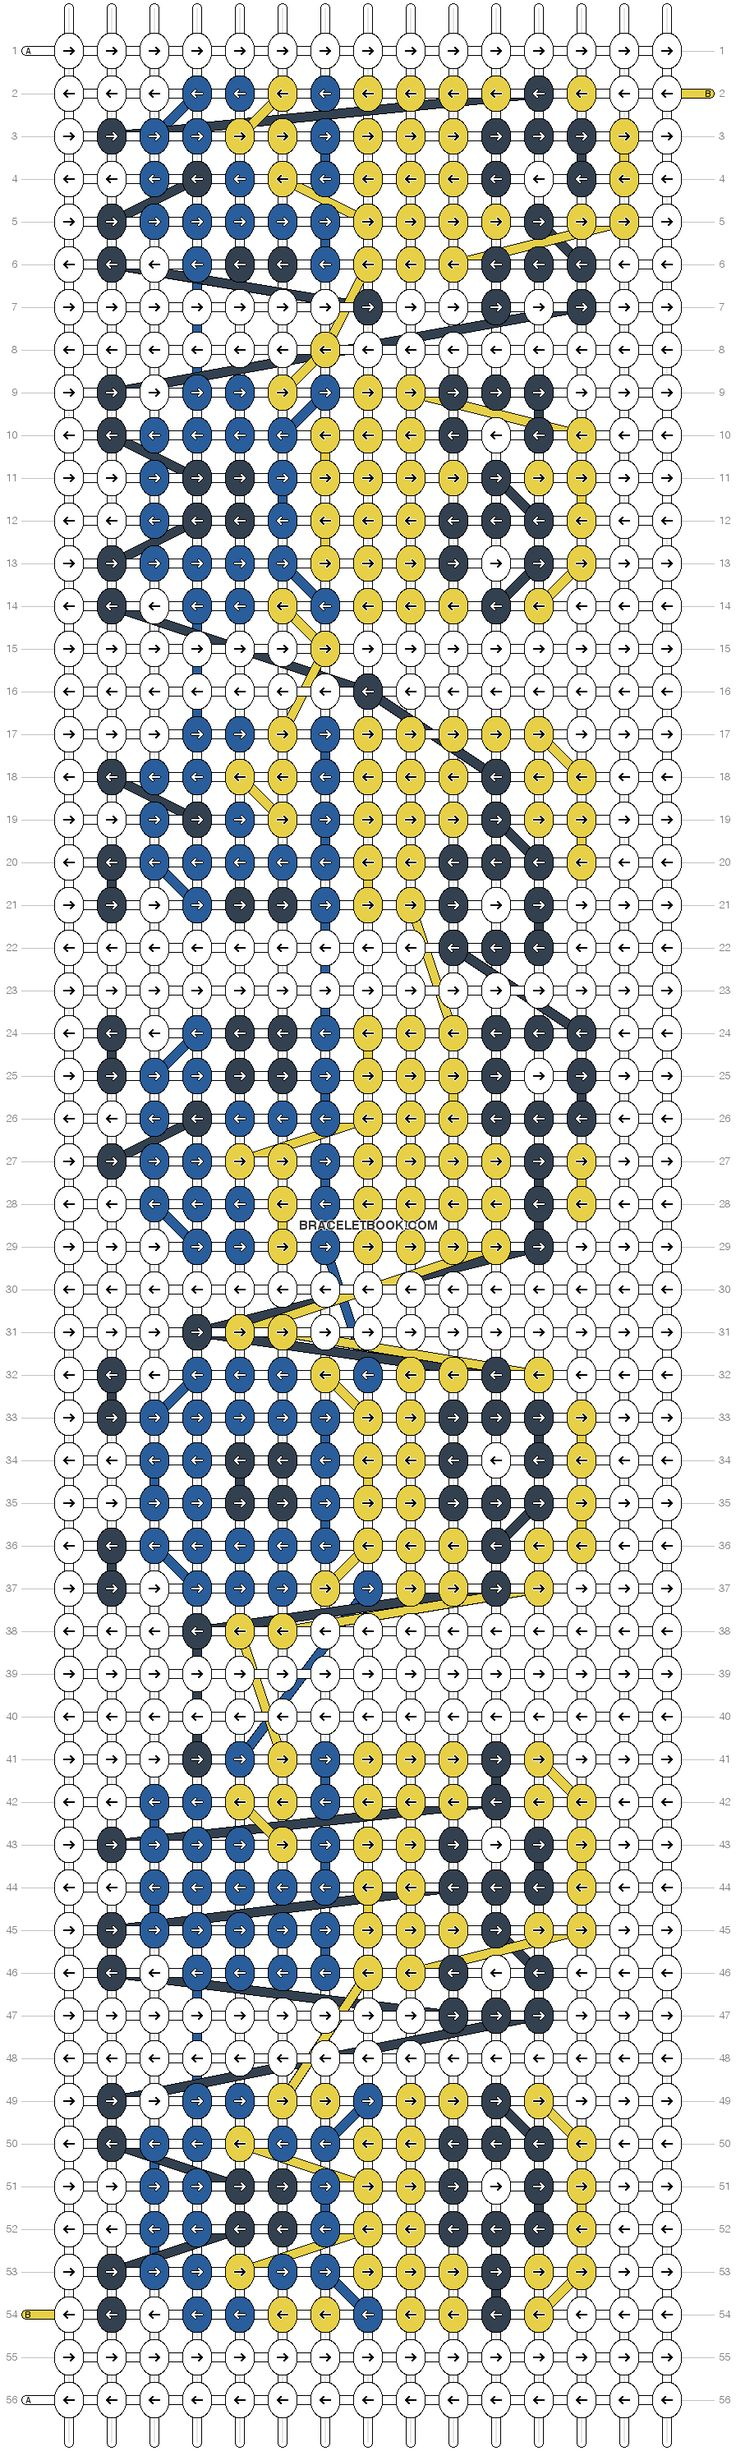 Despicable me minion friendship bracelet pattern number #10772 - For more patterns and tutorials visit our web or the app!